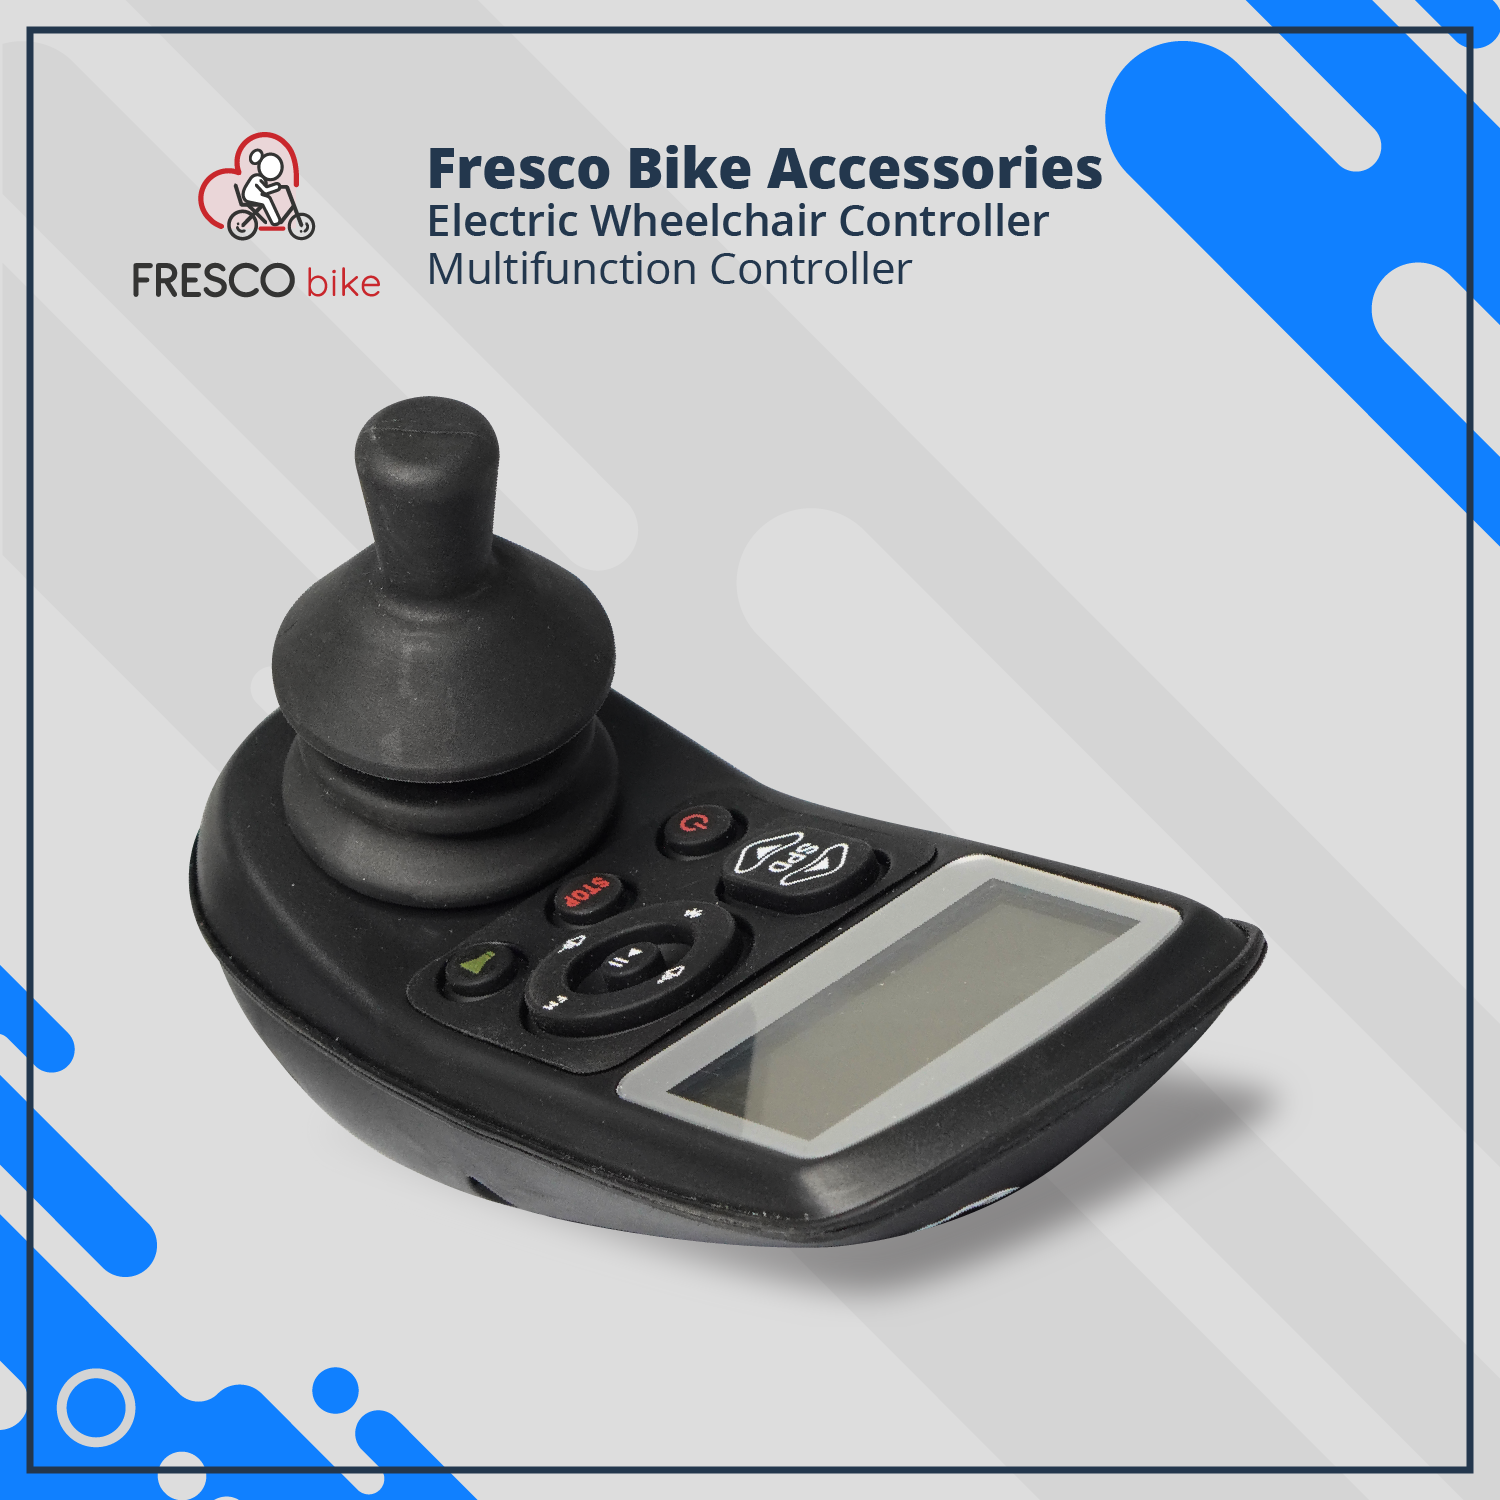 Electric Wheelchair Multifunction Controller